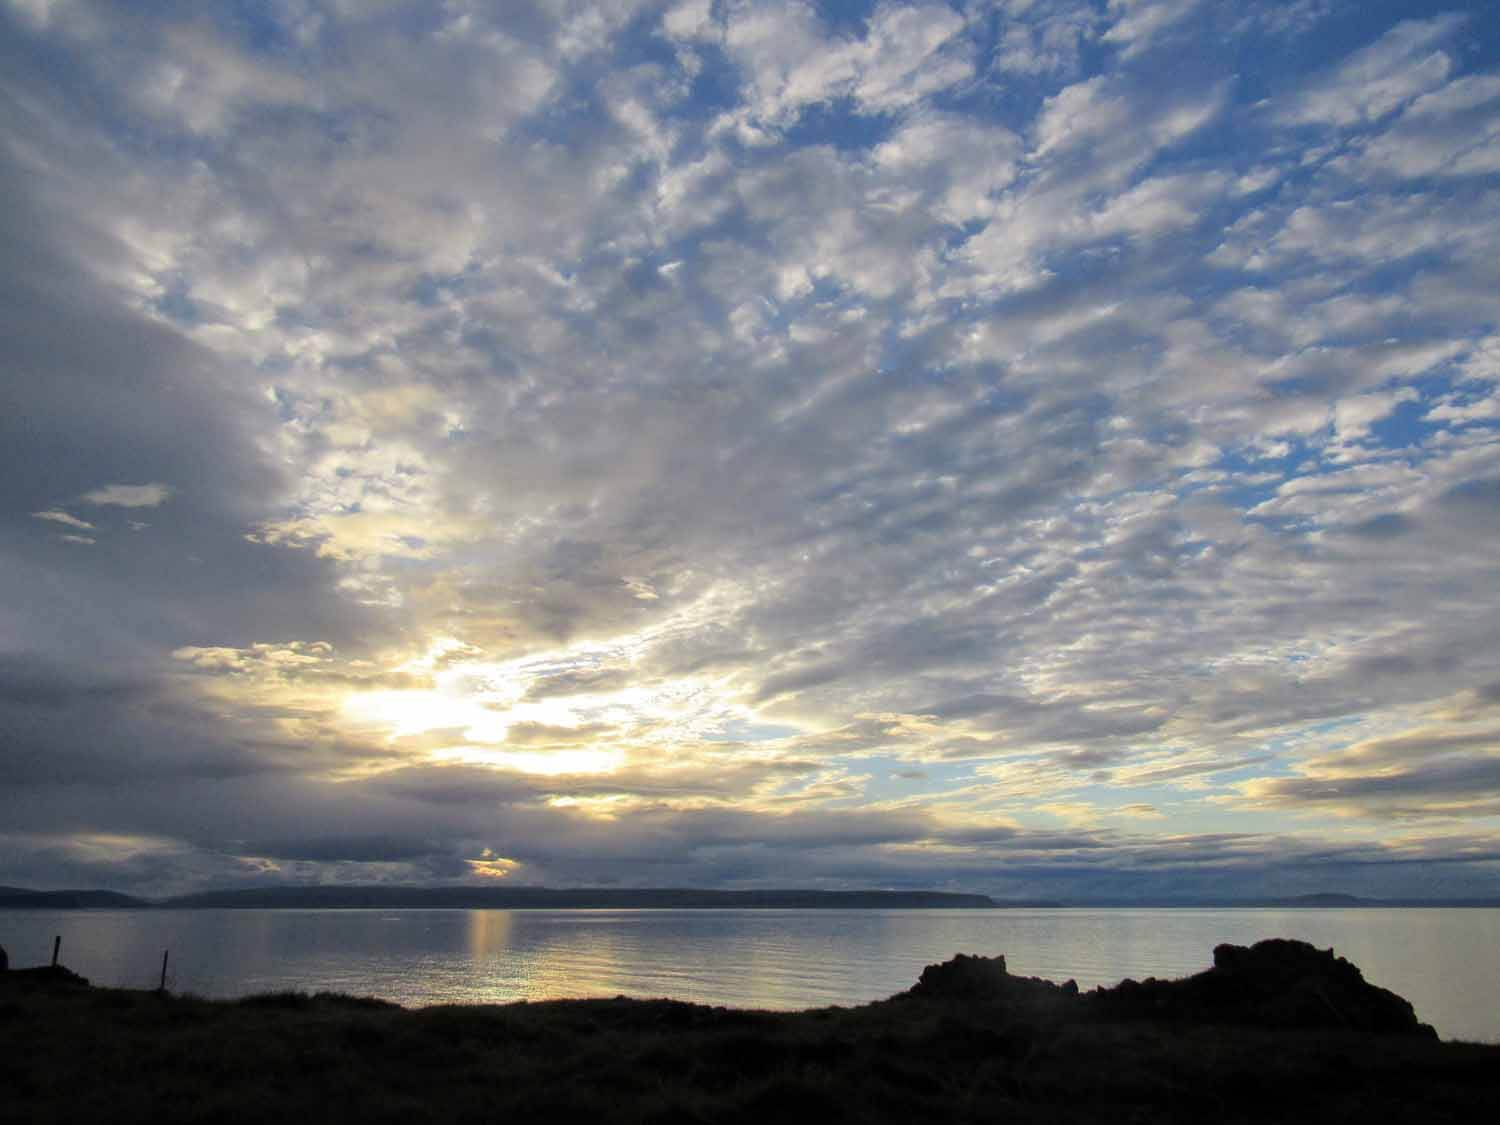 iceland-seal-beach-camping-sunset.jpg